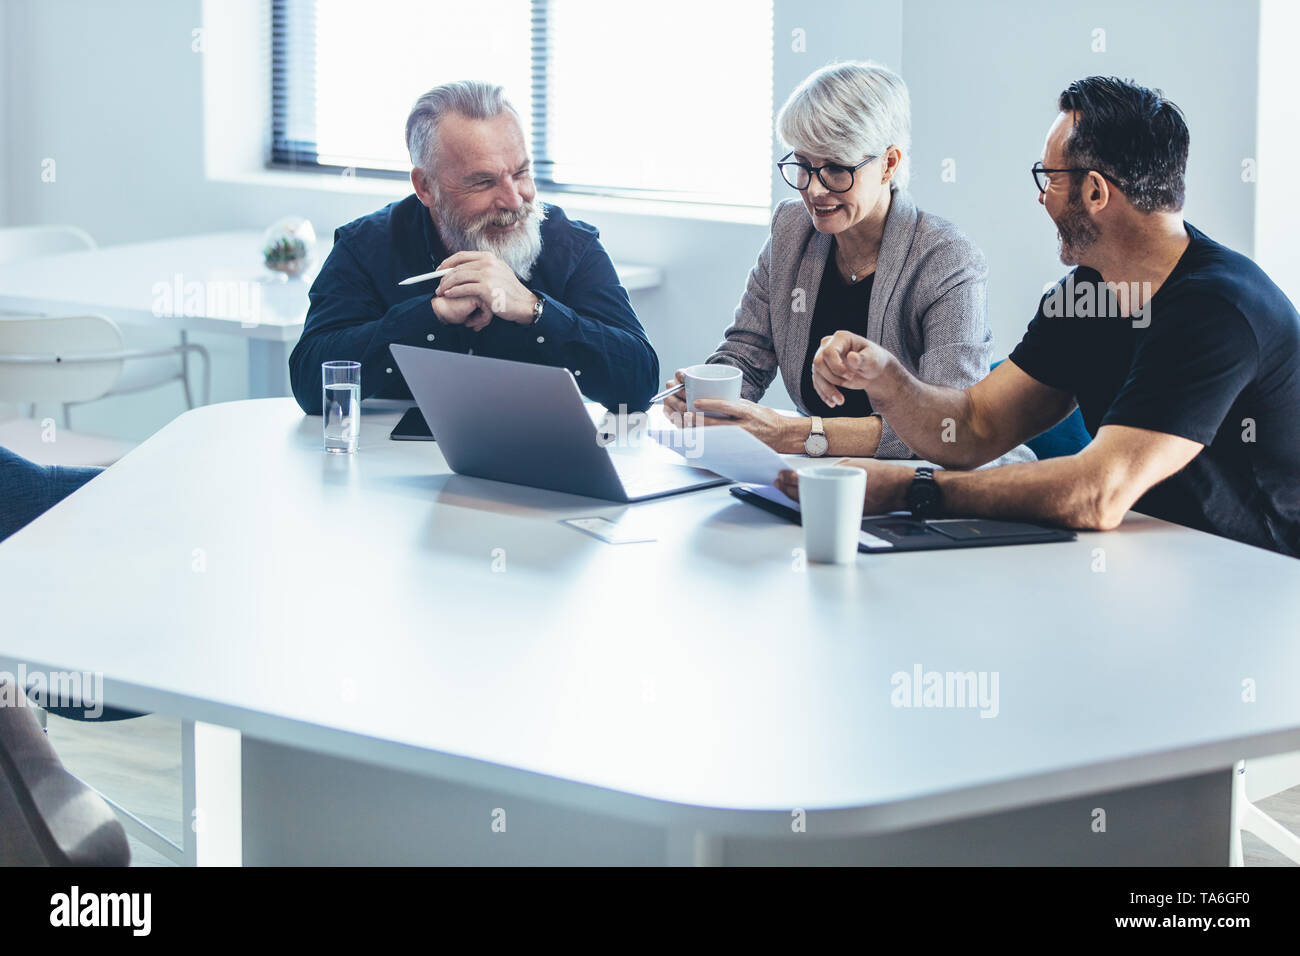 Business people discussing new business plan. Mature manager planning new strategy with colleagues in meeting. Stock Photo